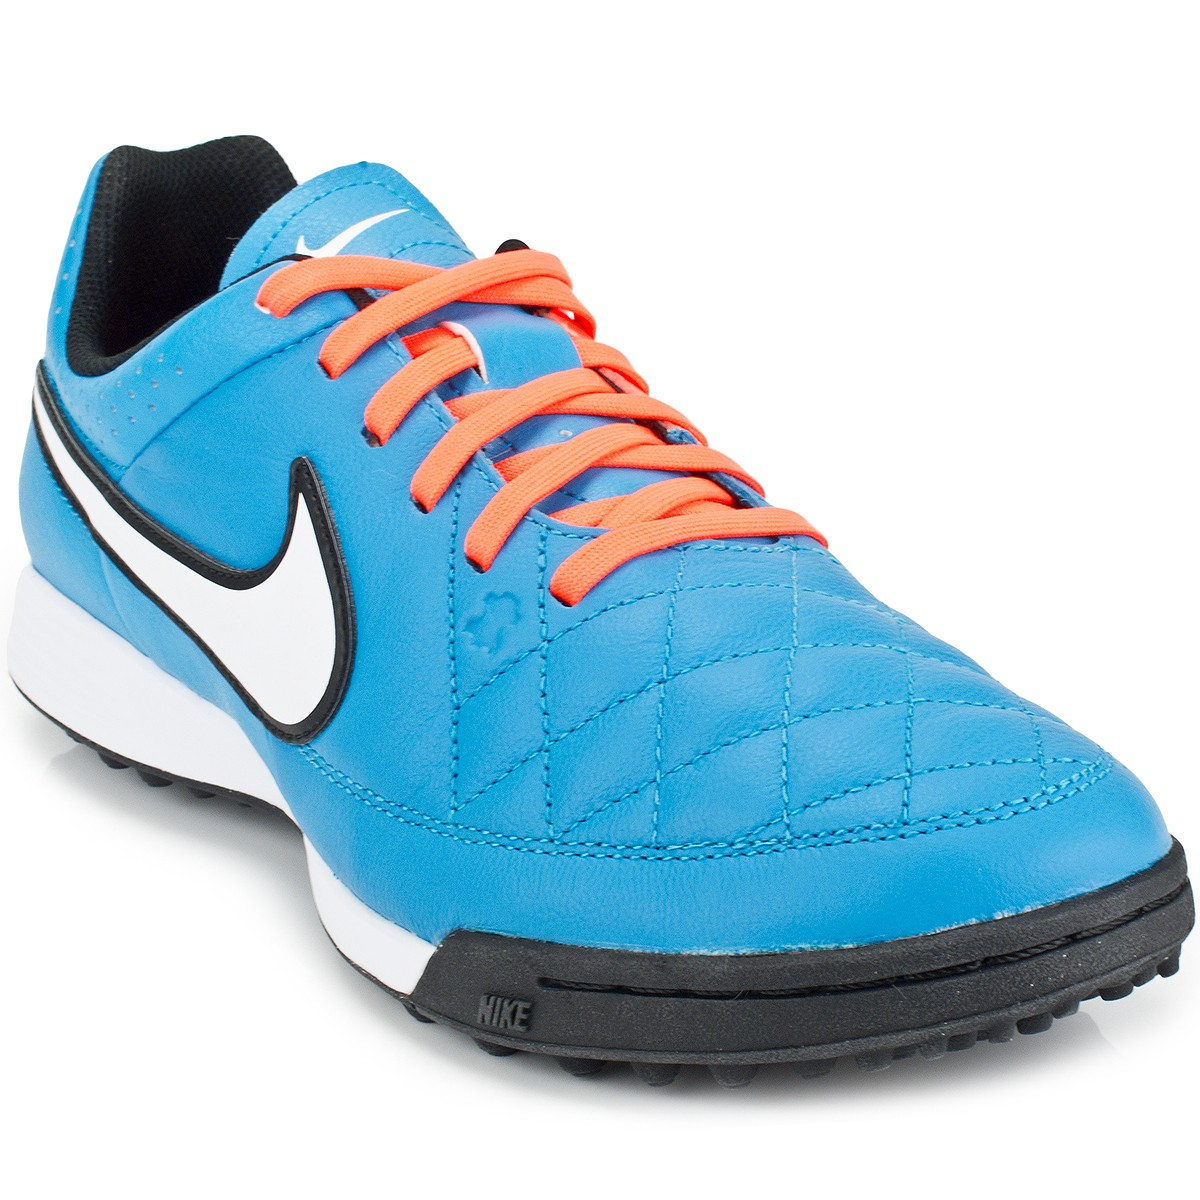 Chuteira Nike Tiempo Genio Leather TF  fc40da8399377